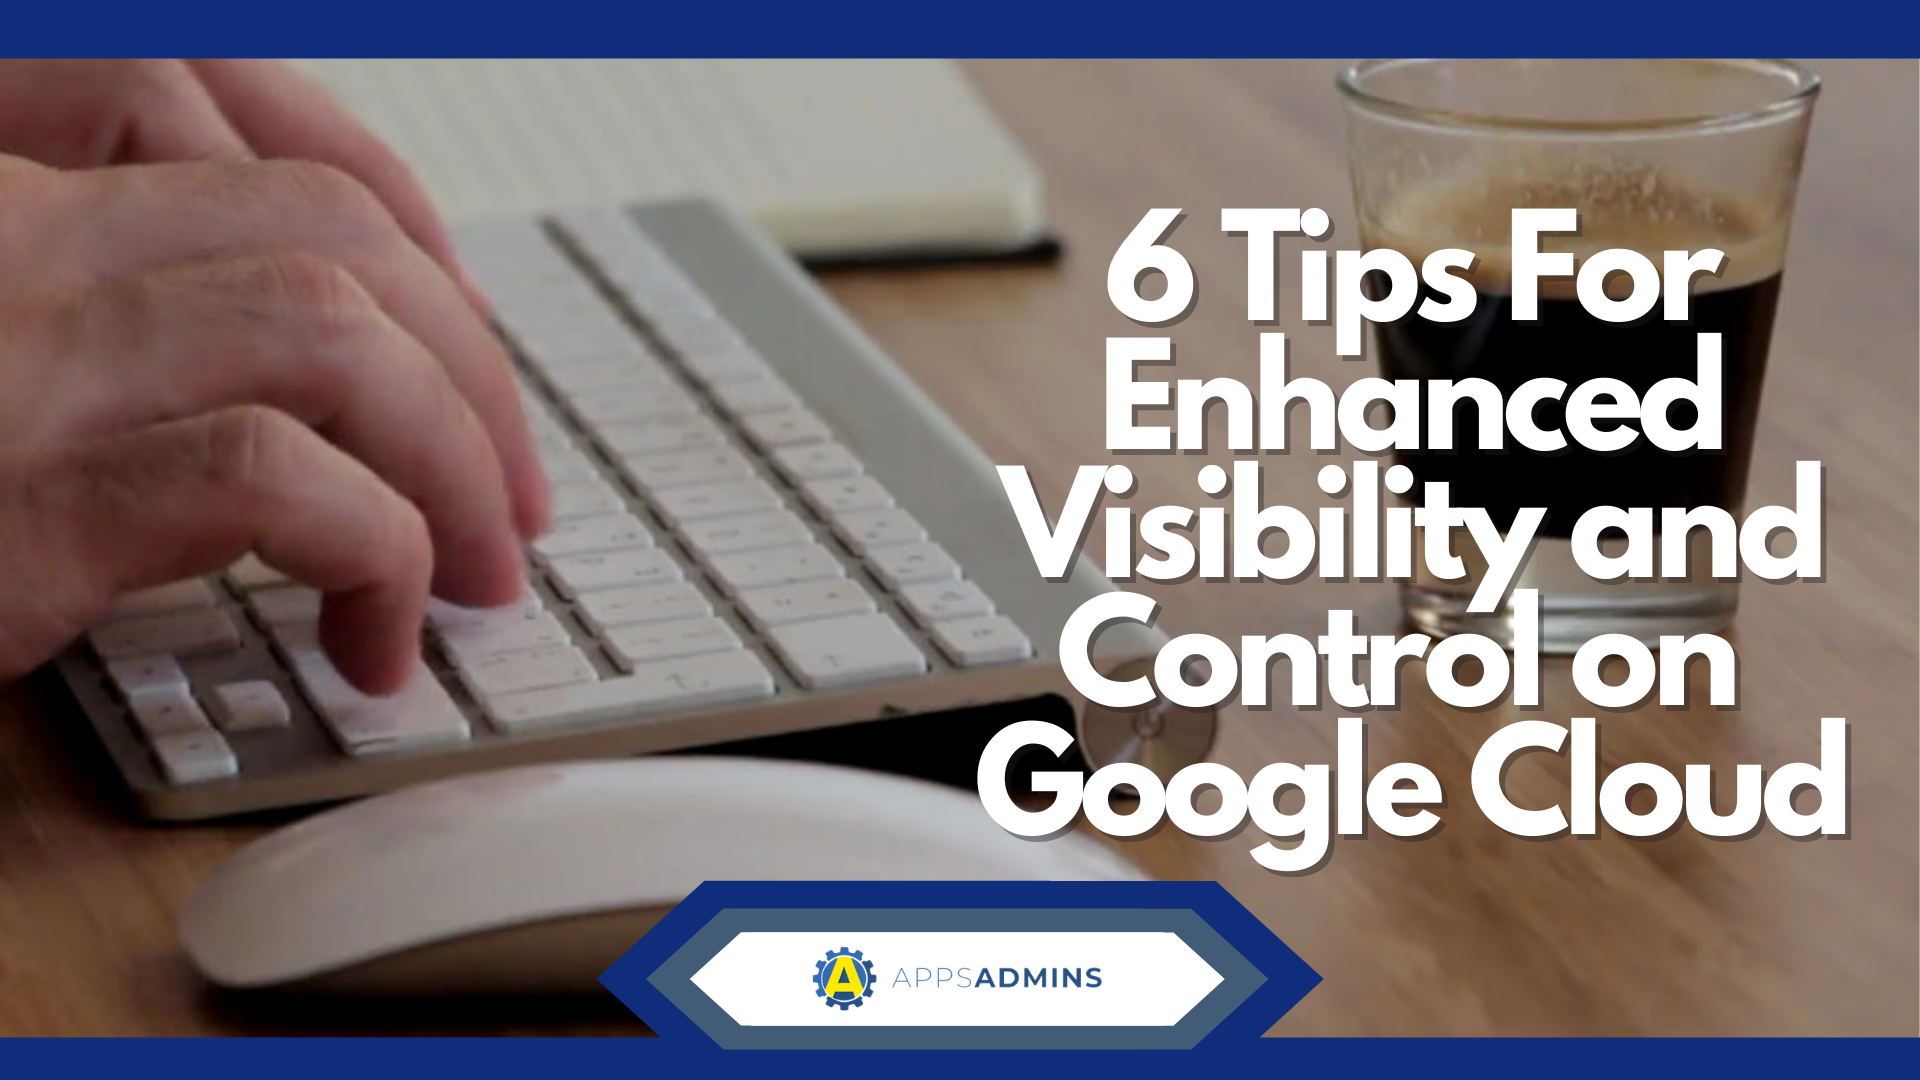 6 Tips For Enhanced Visibility and Control on Google Cloud